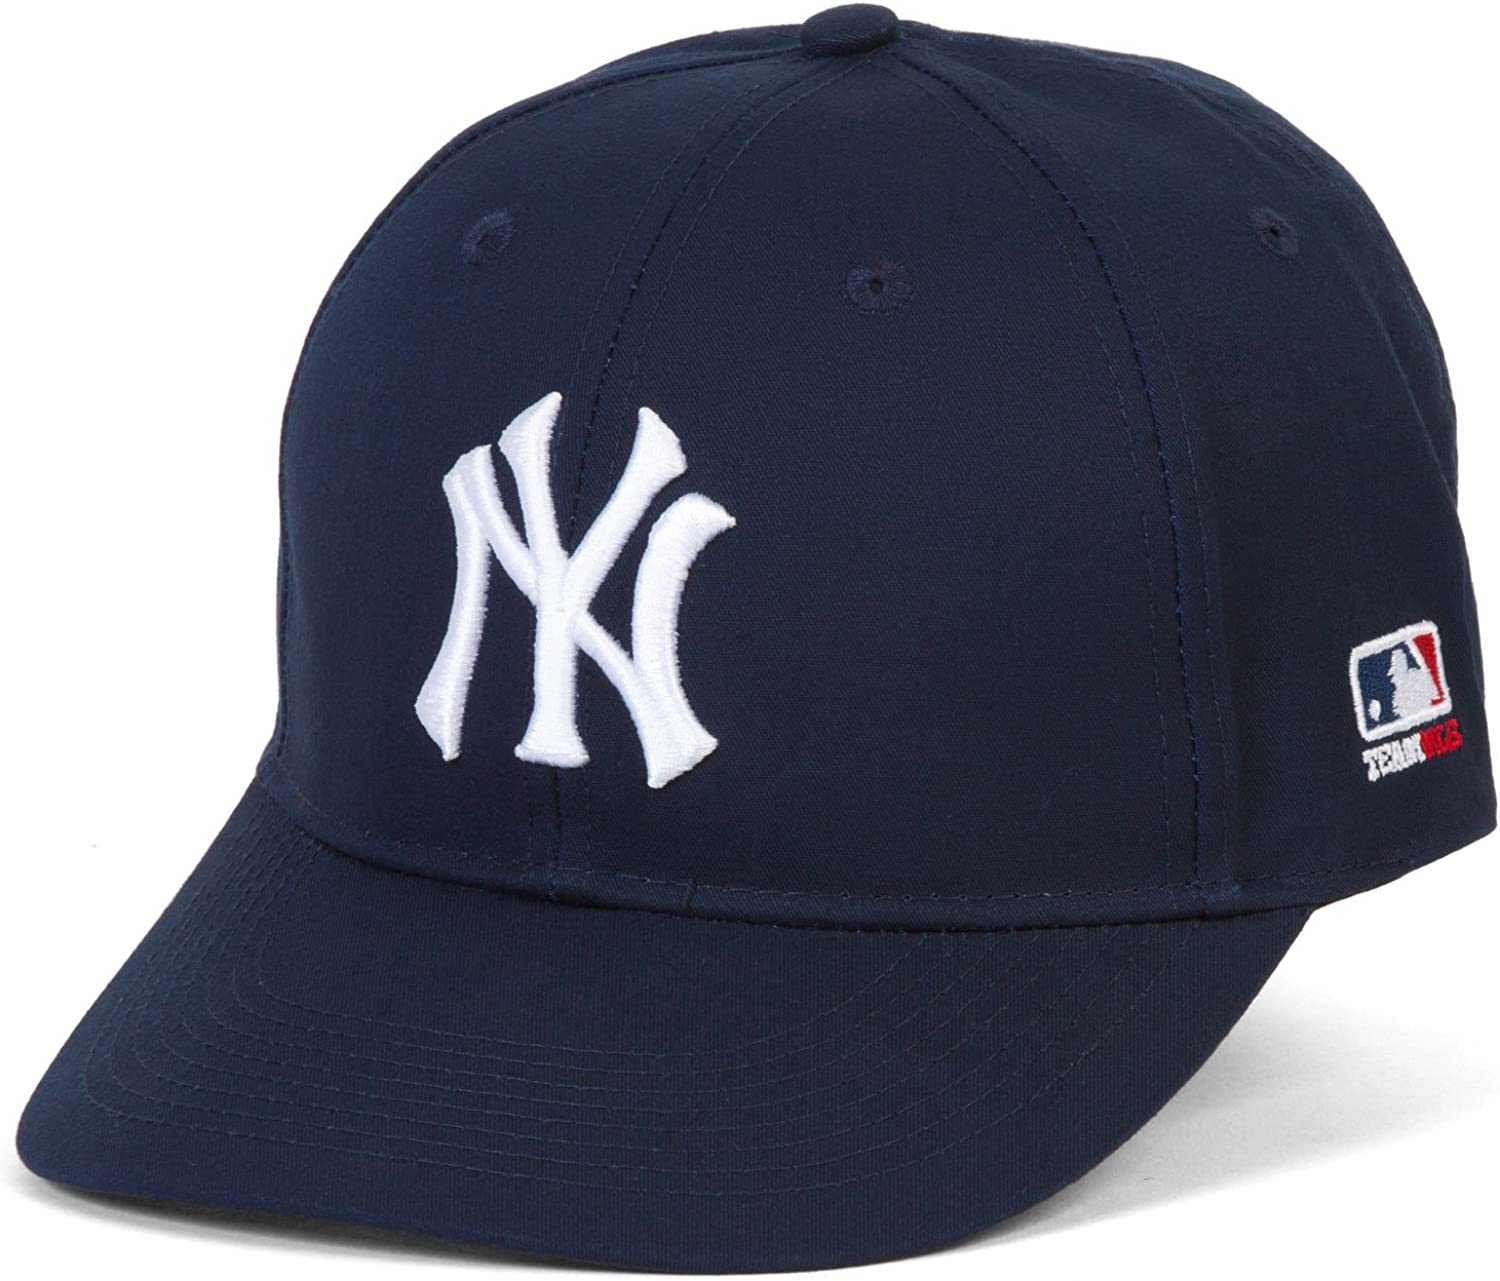 MLB Replica Adult New York YANKEES Home Cap Adjustable Velcro Twill : Sports Fan Baseball Caps : Clothing